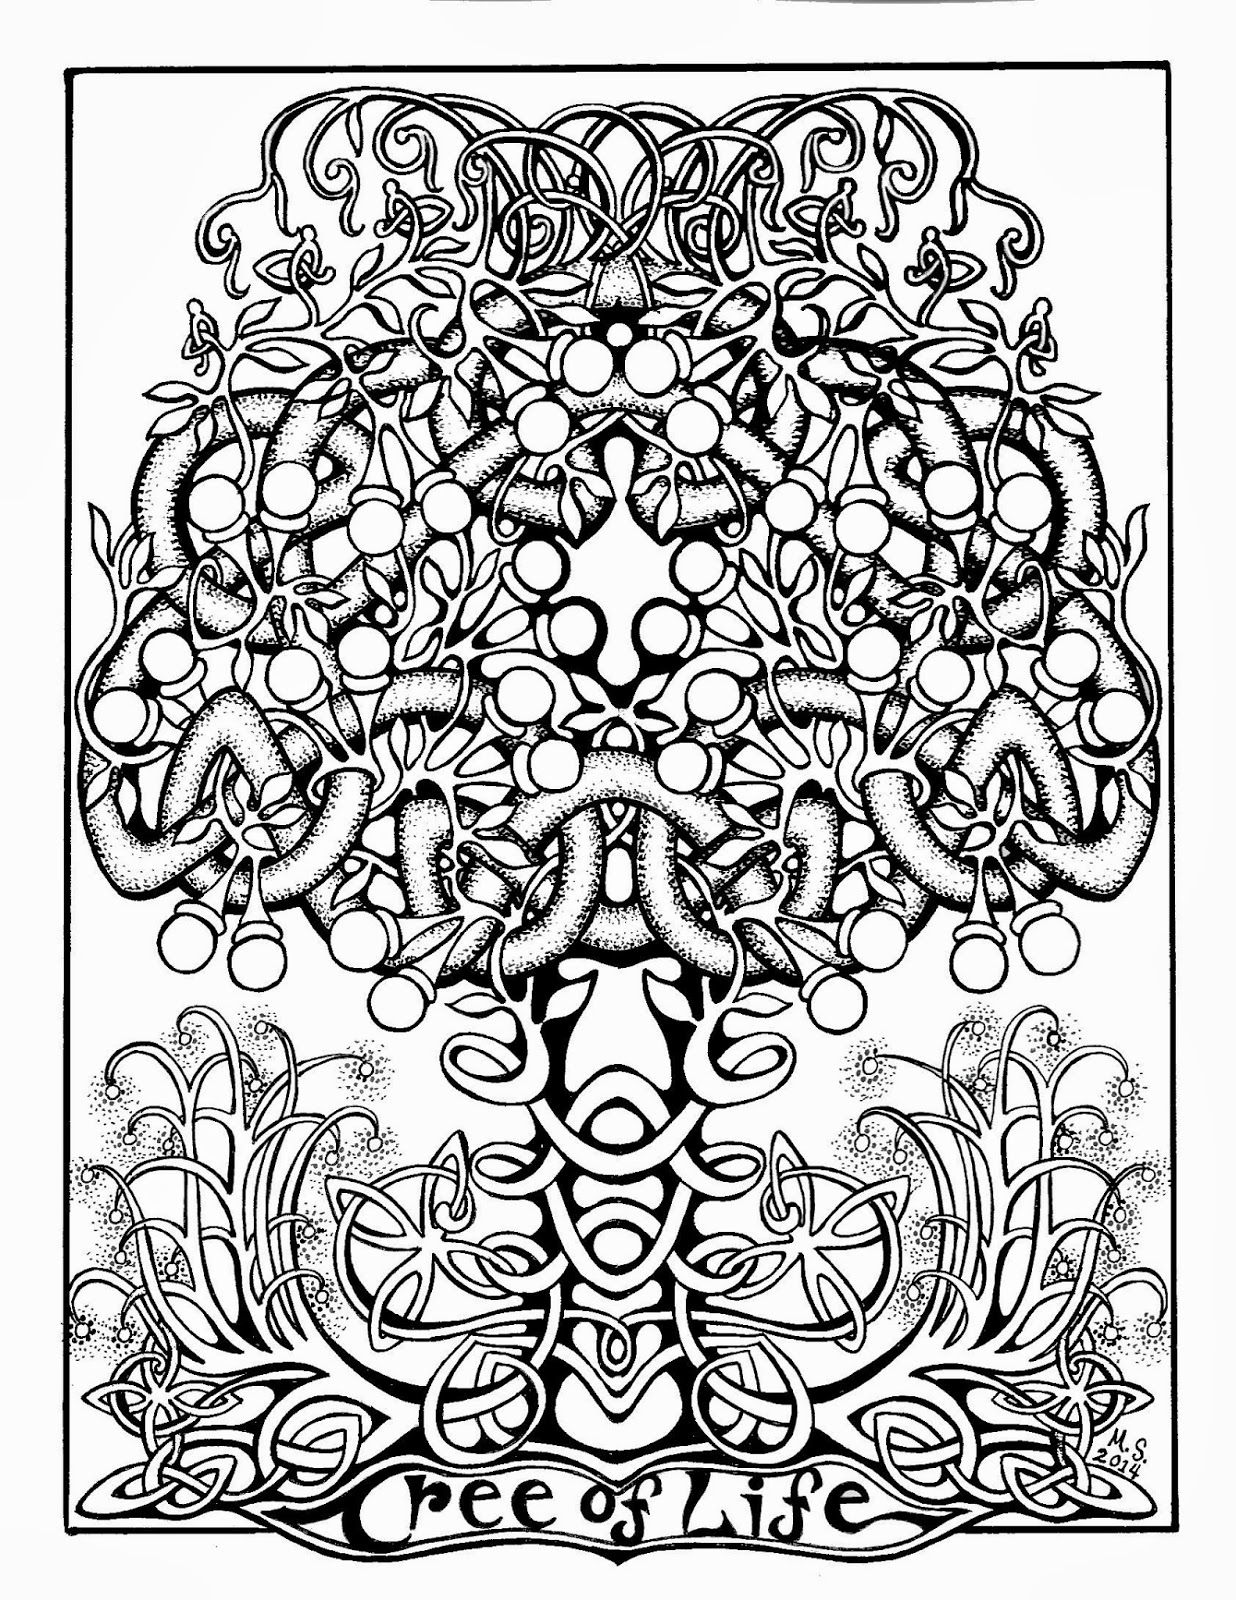 cut paste and color the tree of life coloring page some celtic fun